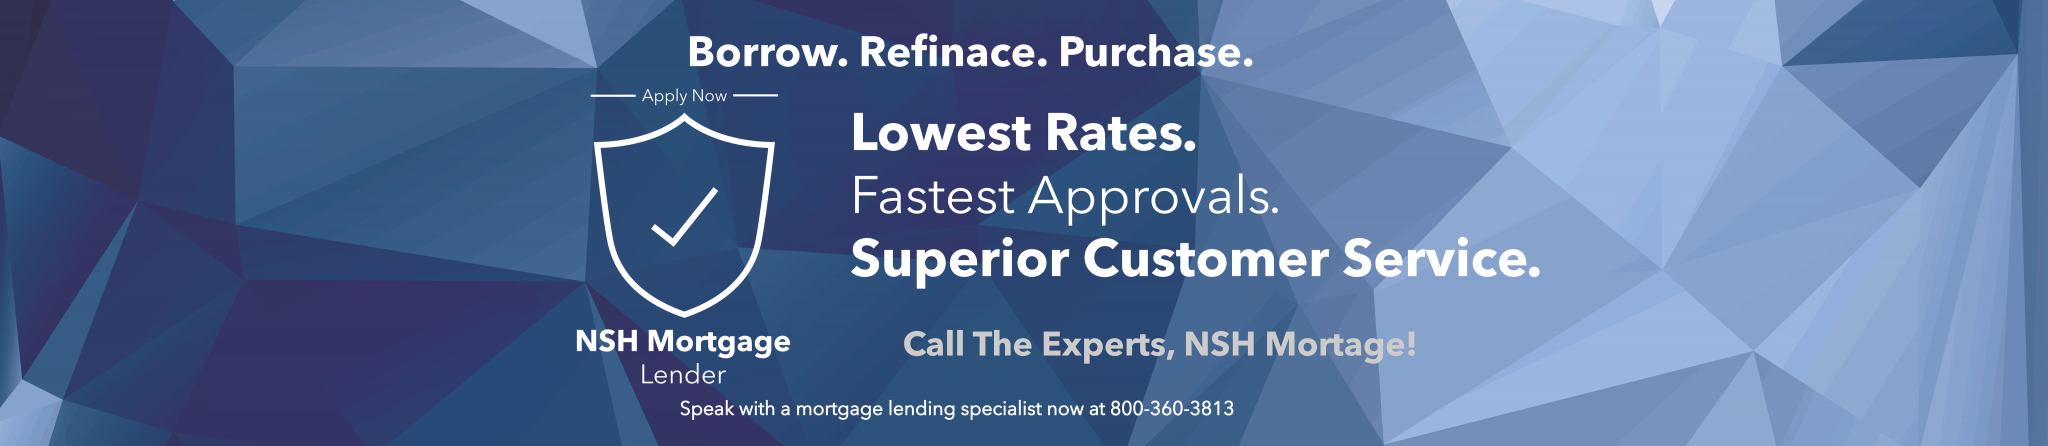 Florida Home Loans | Mortgage & Purchase Loans | NSH Mortgage Lender